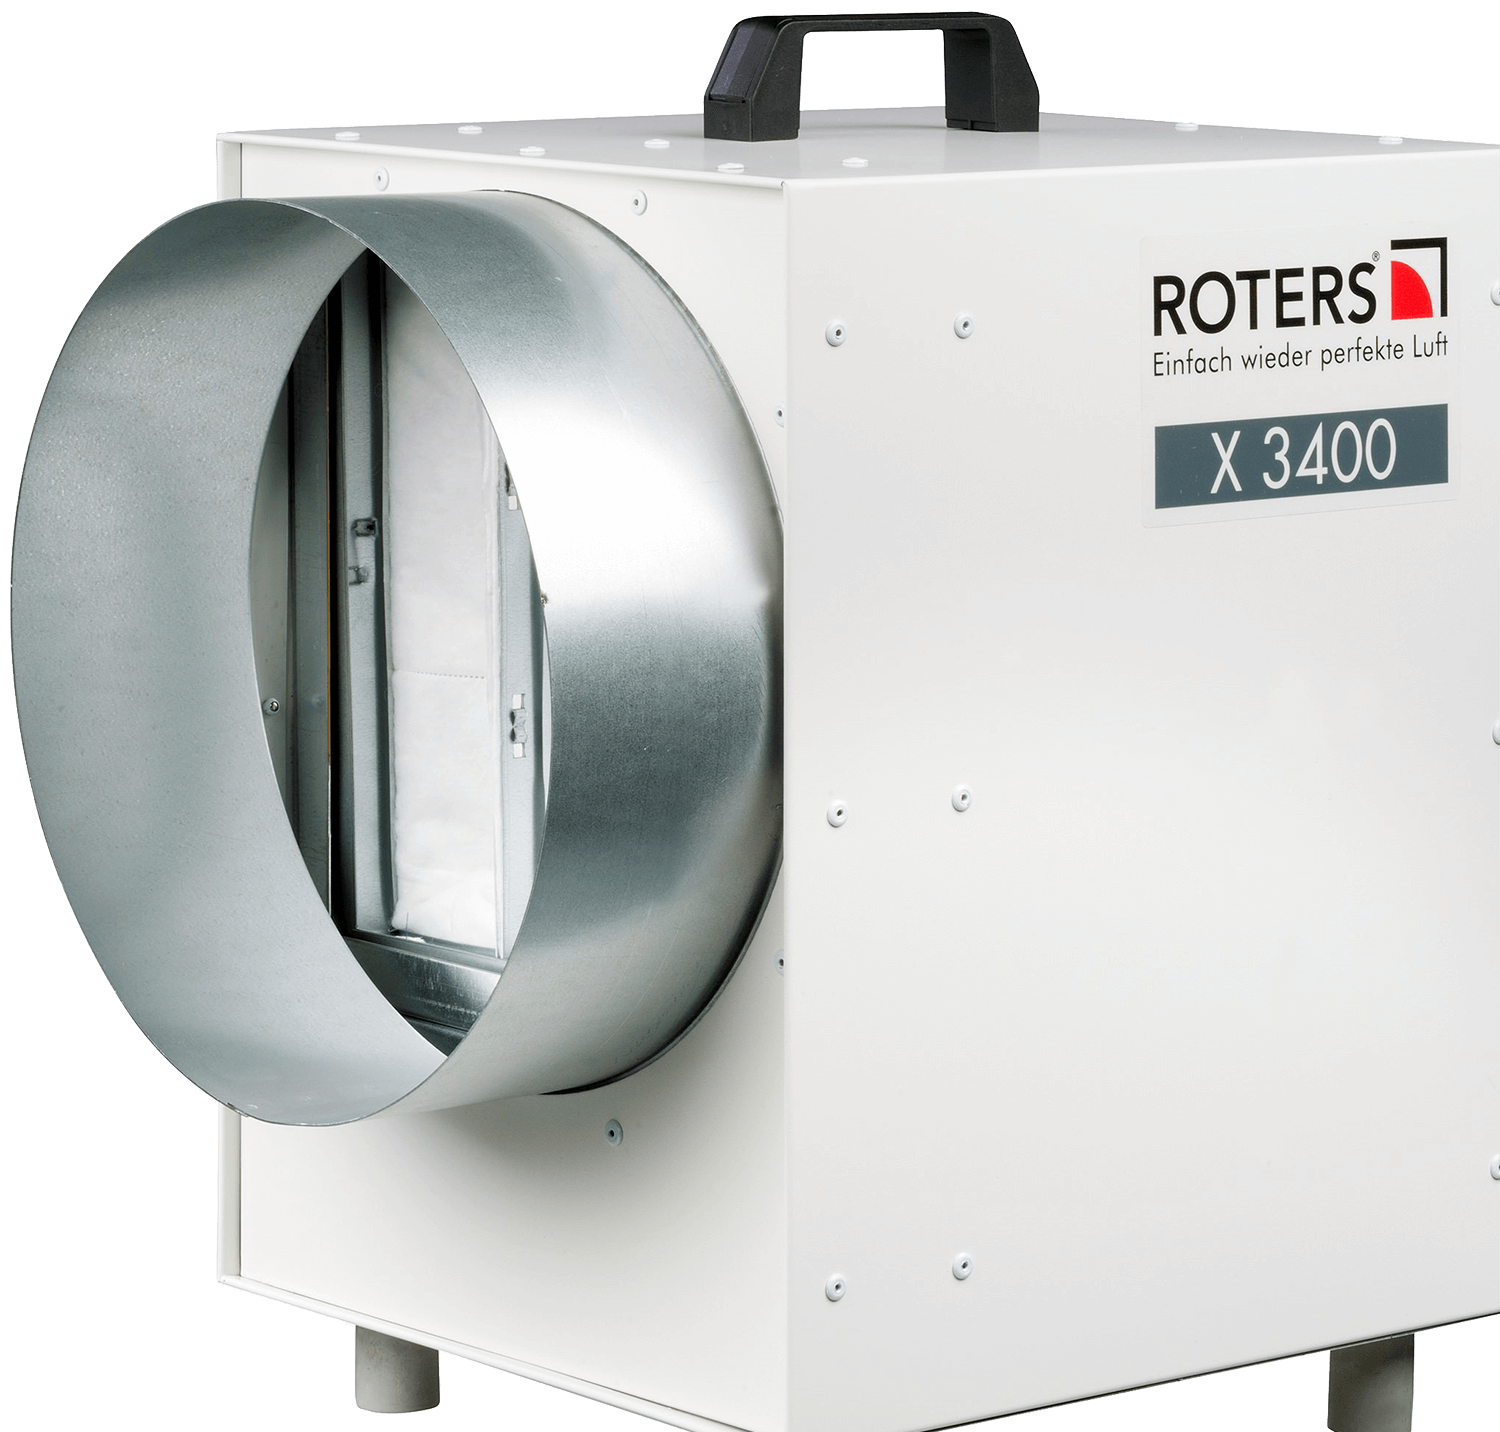 Roters X3400